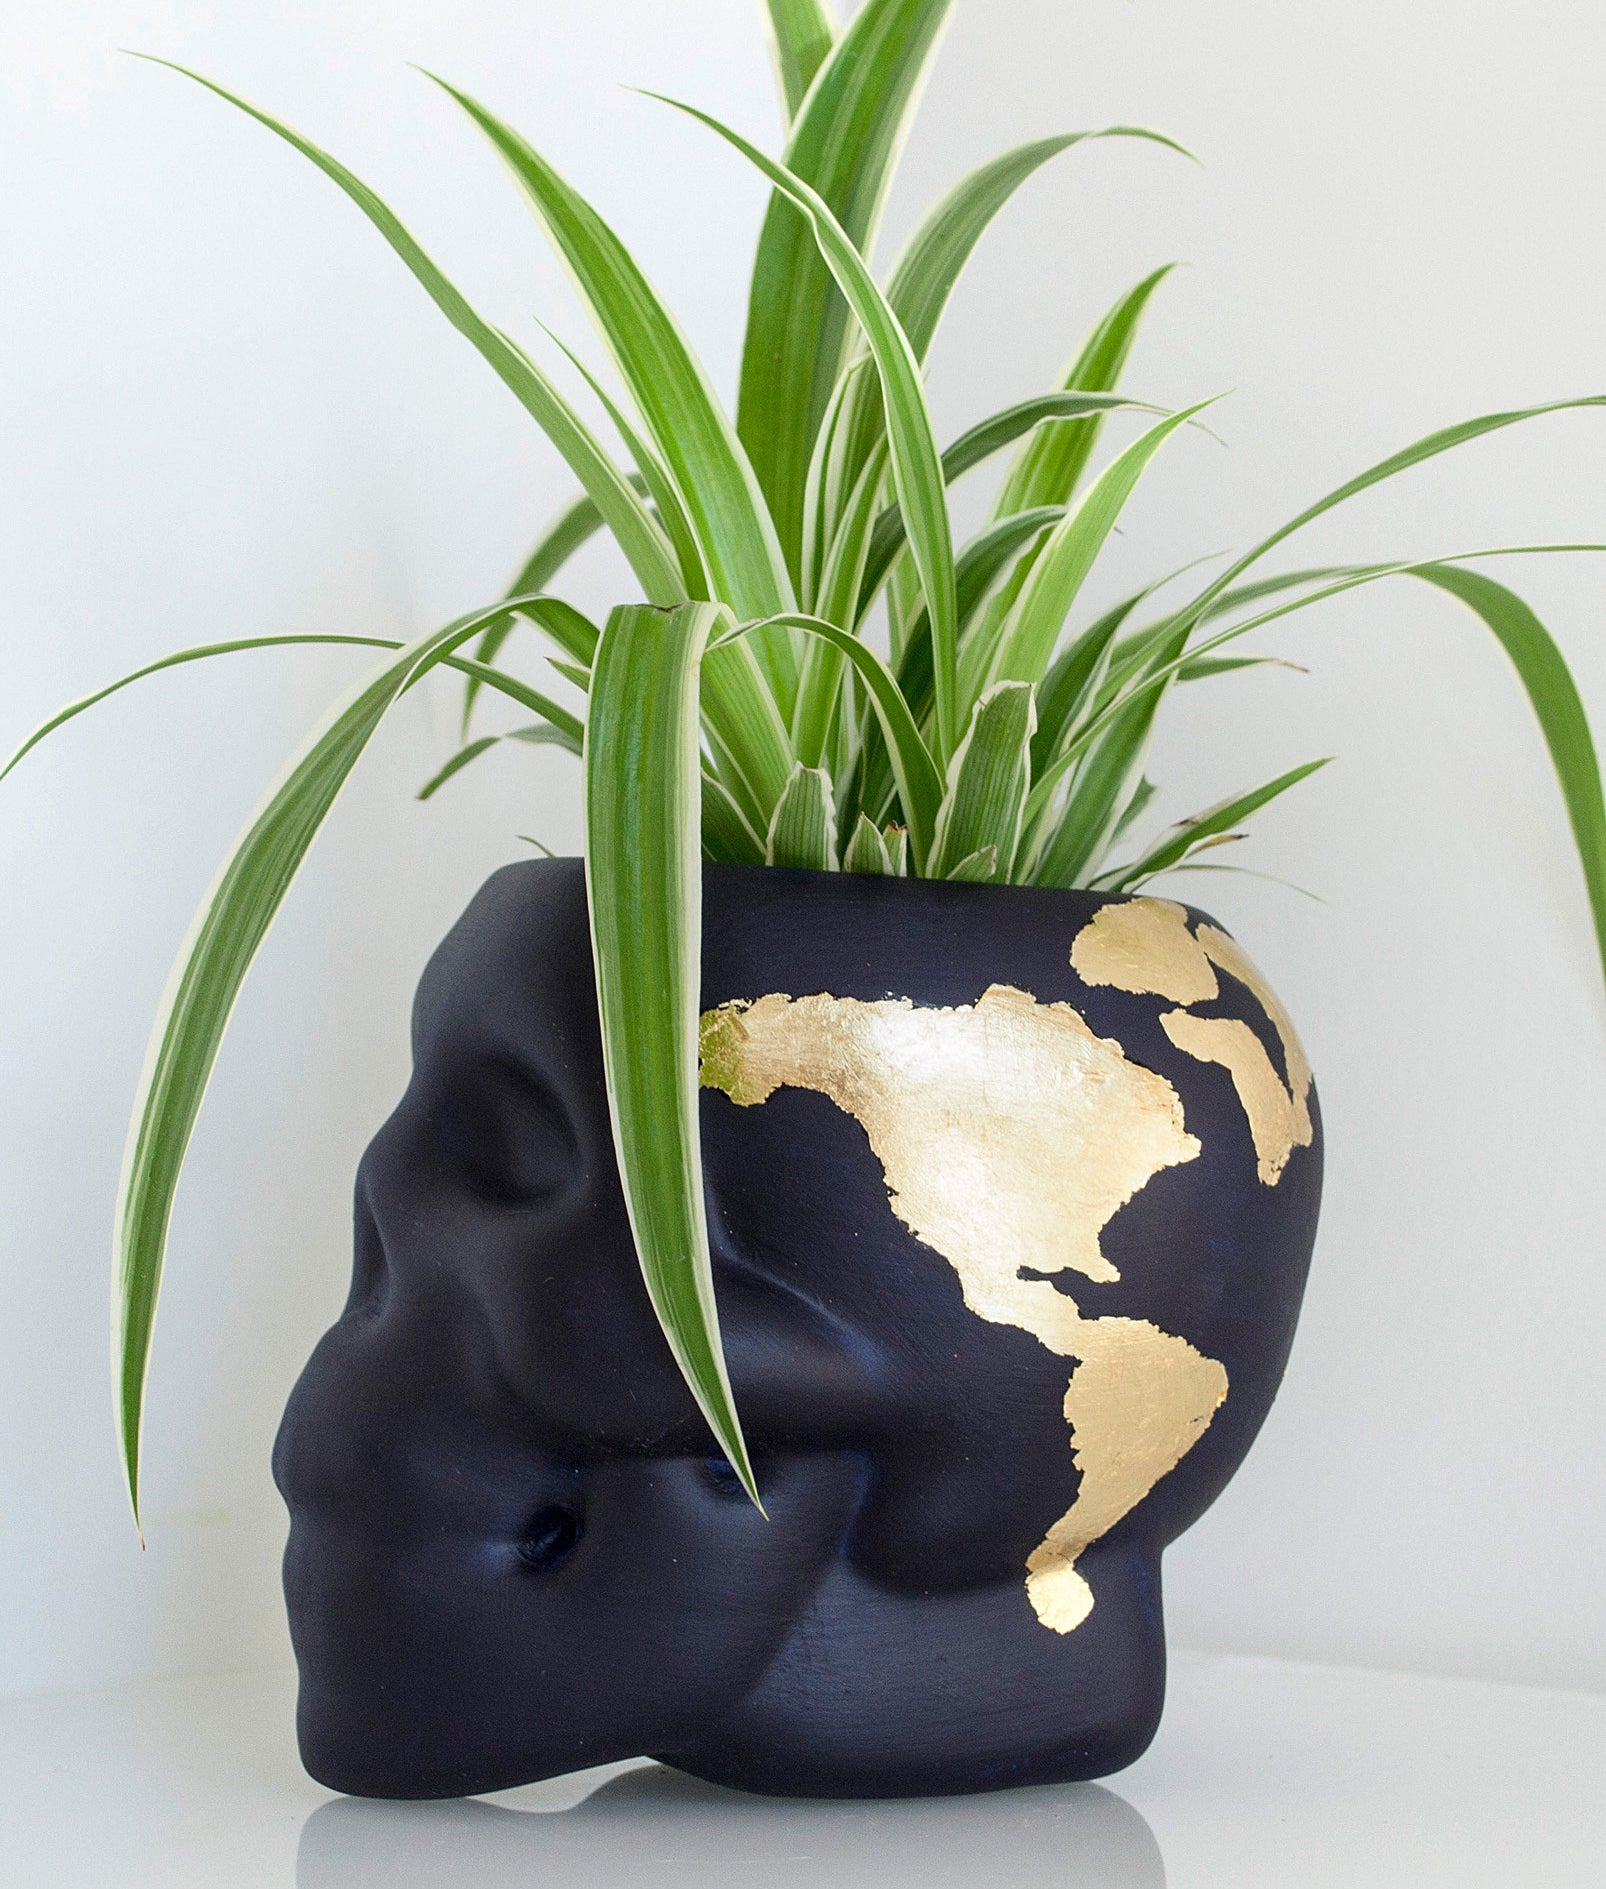 AThe skull-plant pot with a plant inside